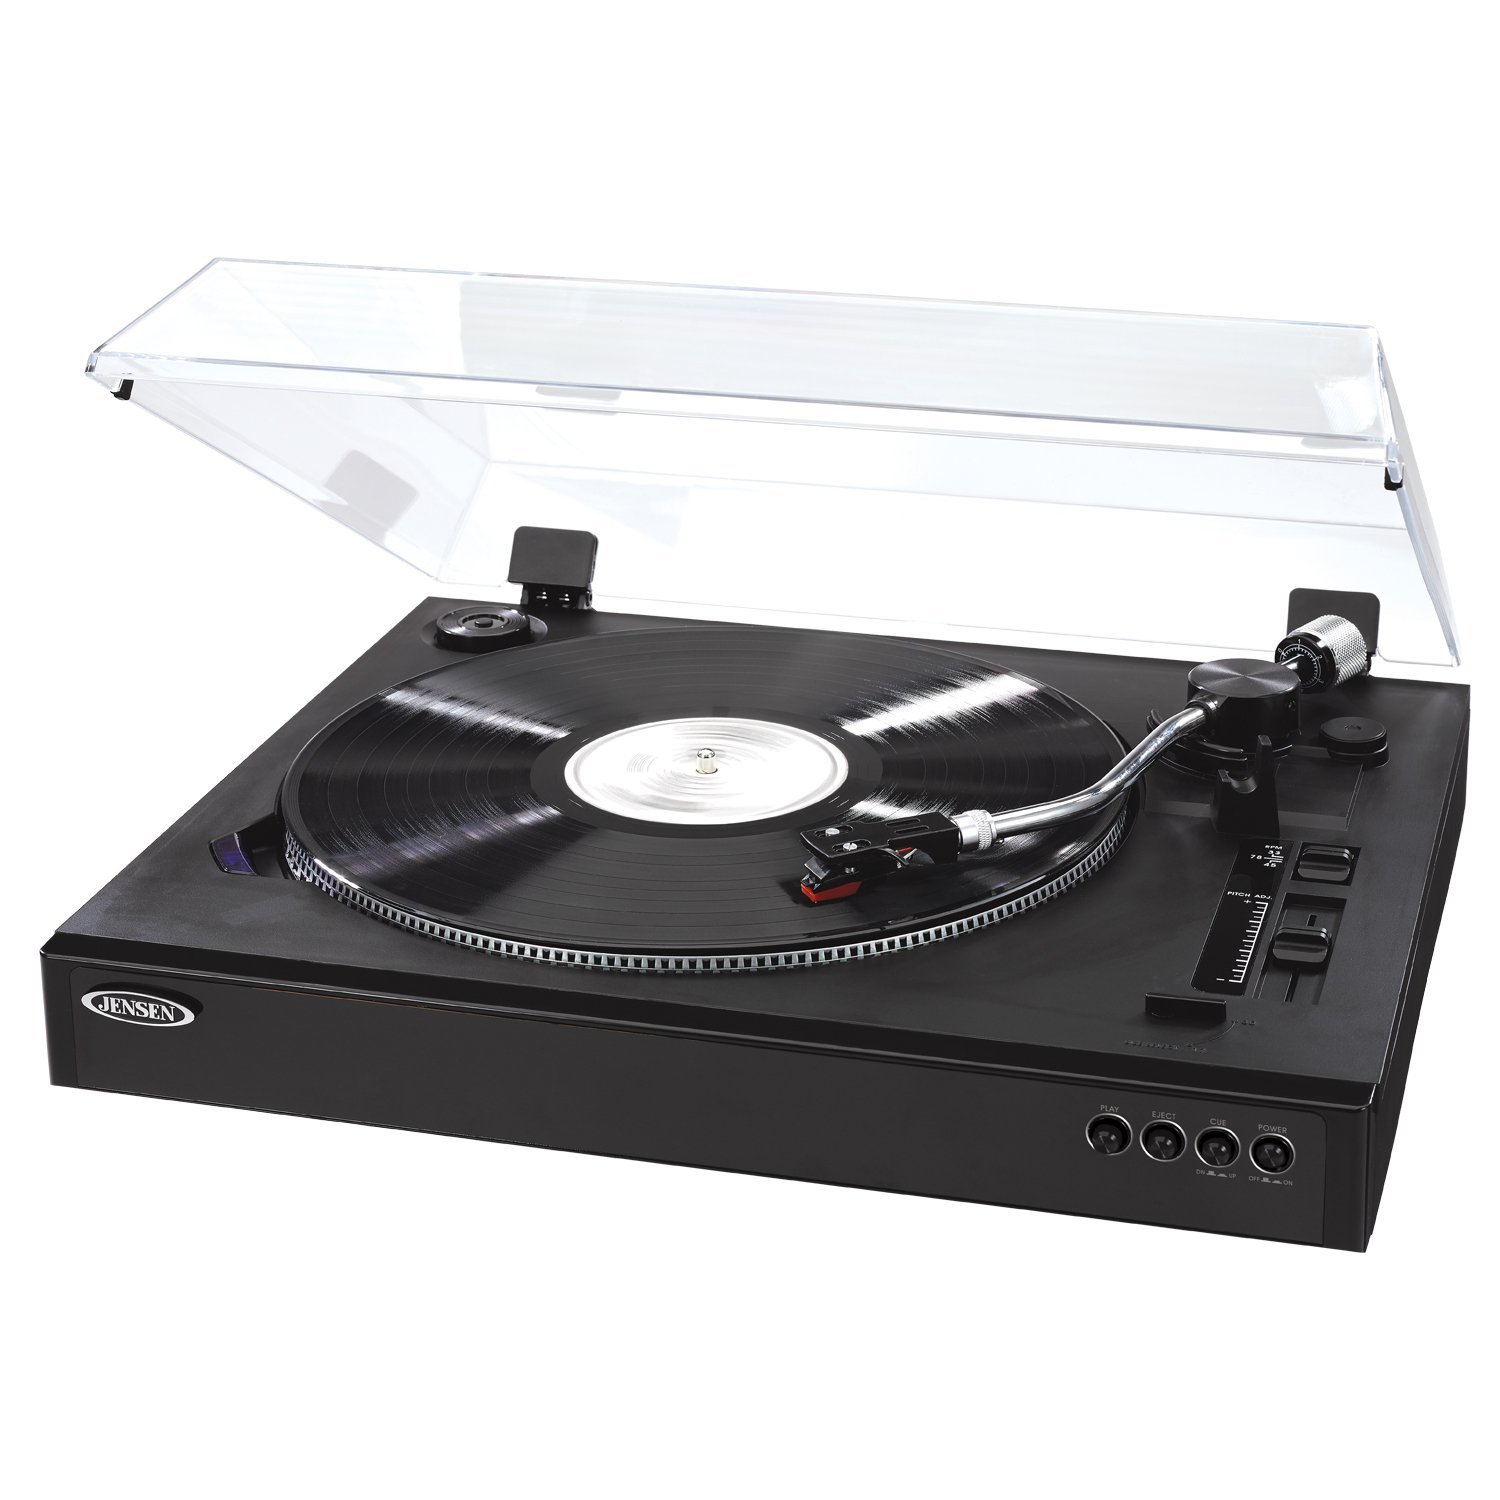 Turntable, Jensen Jta-470 Record Player Vinyl Modern Small Portable Turntable by Jensen